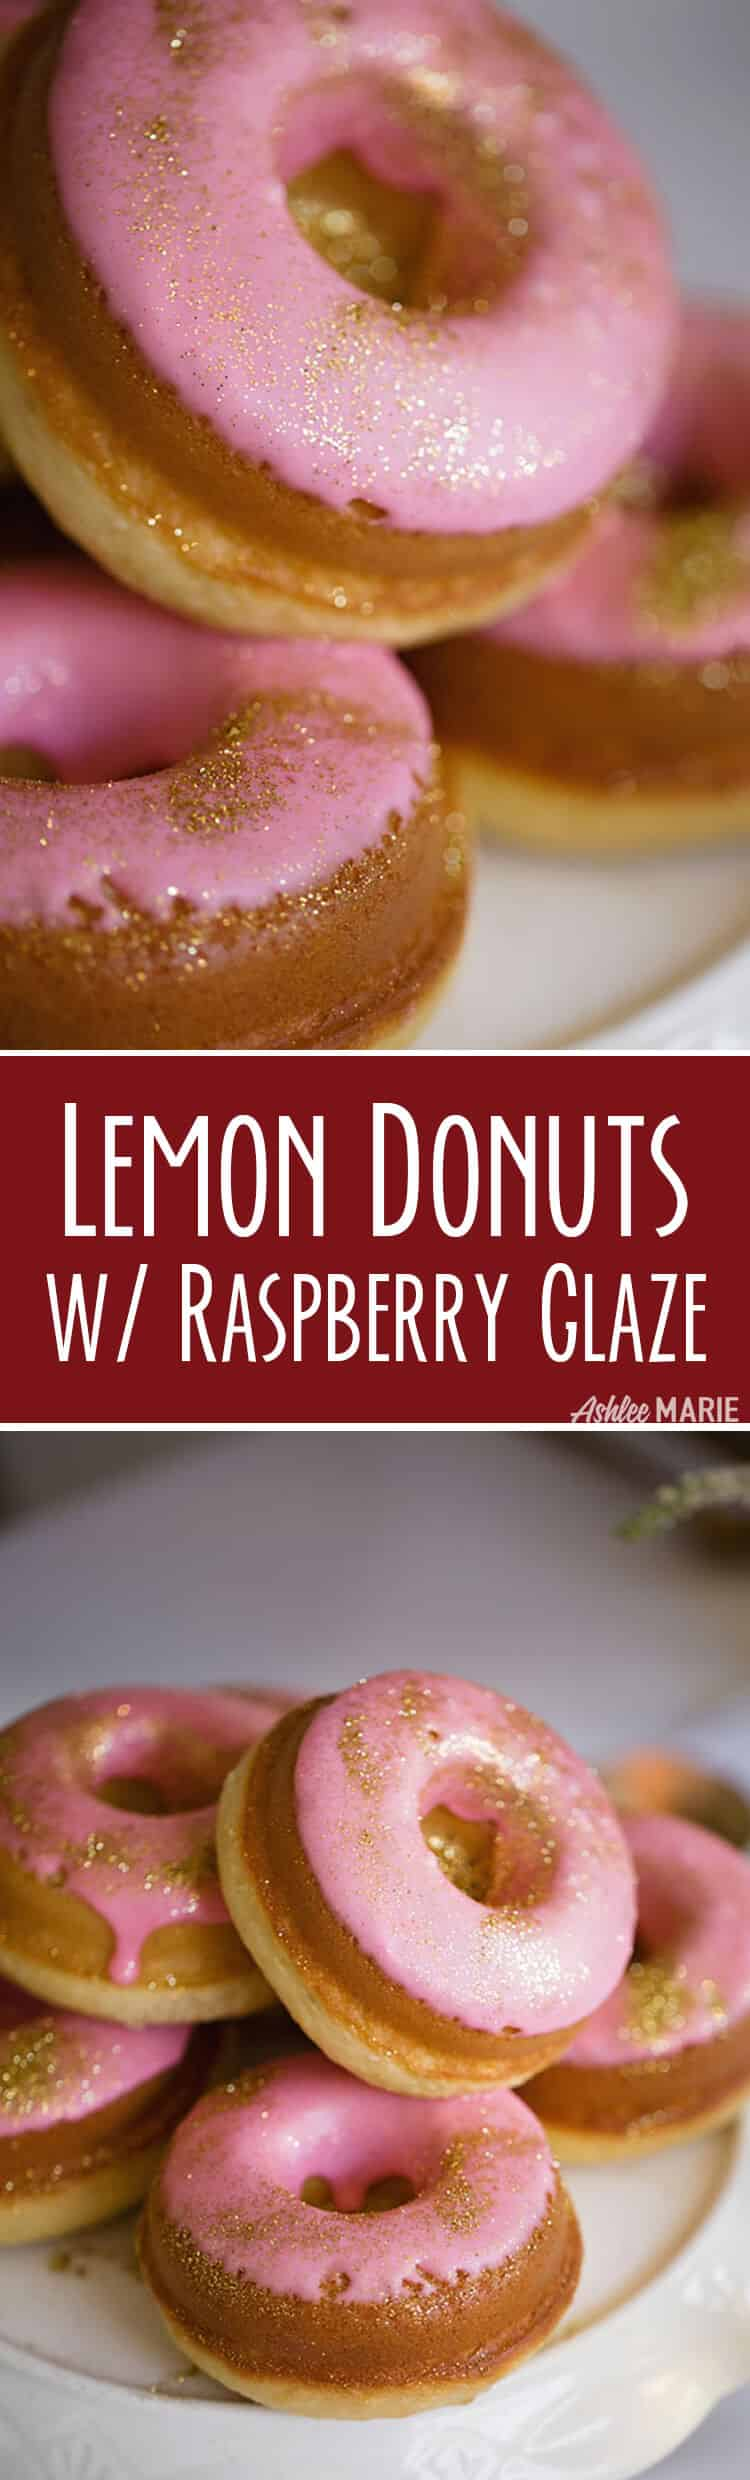 easy to make baked lemon cake donut recipe with a delicious raspberry glaze